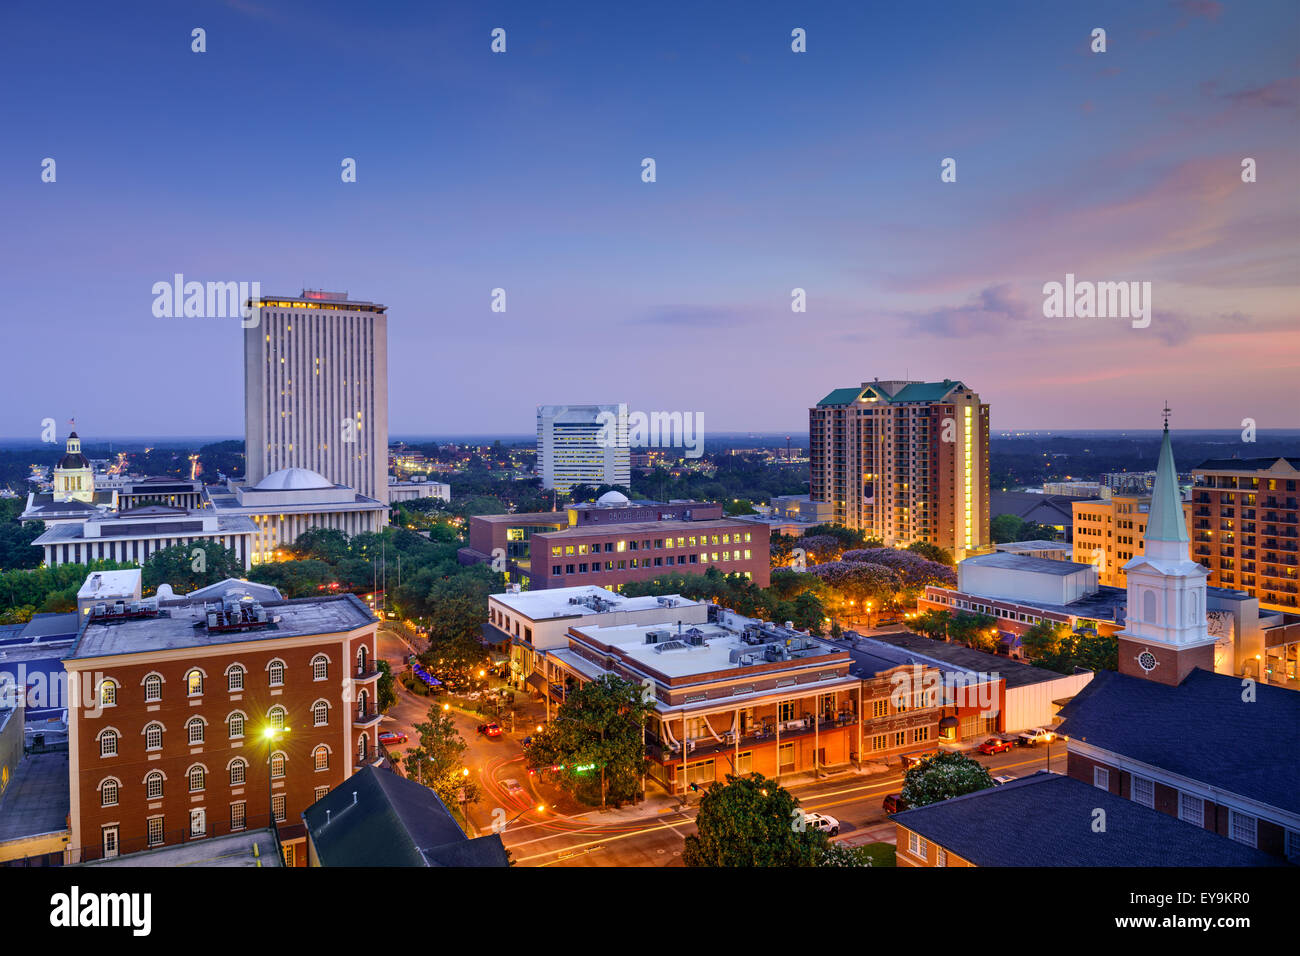 Tallahassee, Florida, USA downtown skyline. - Stock Image